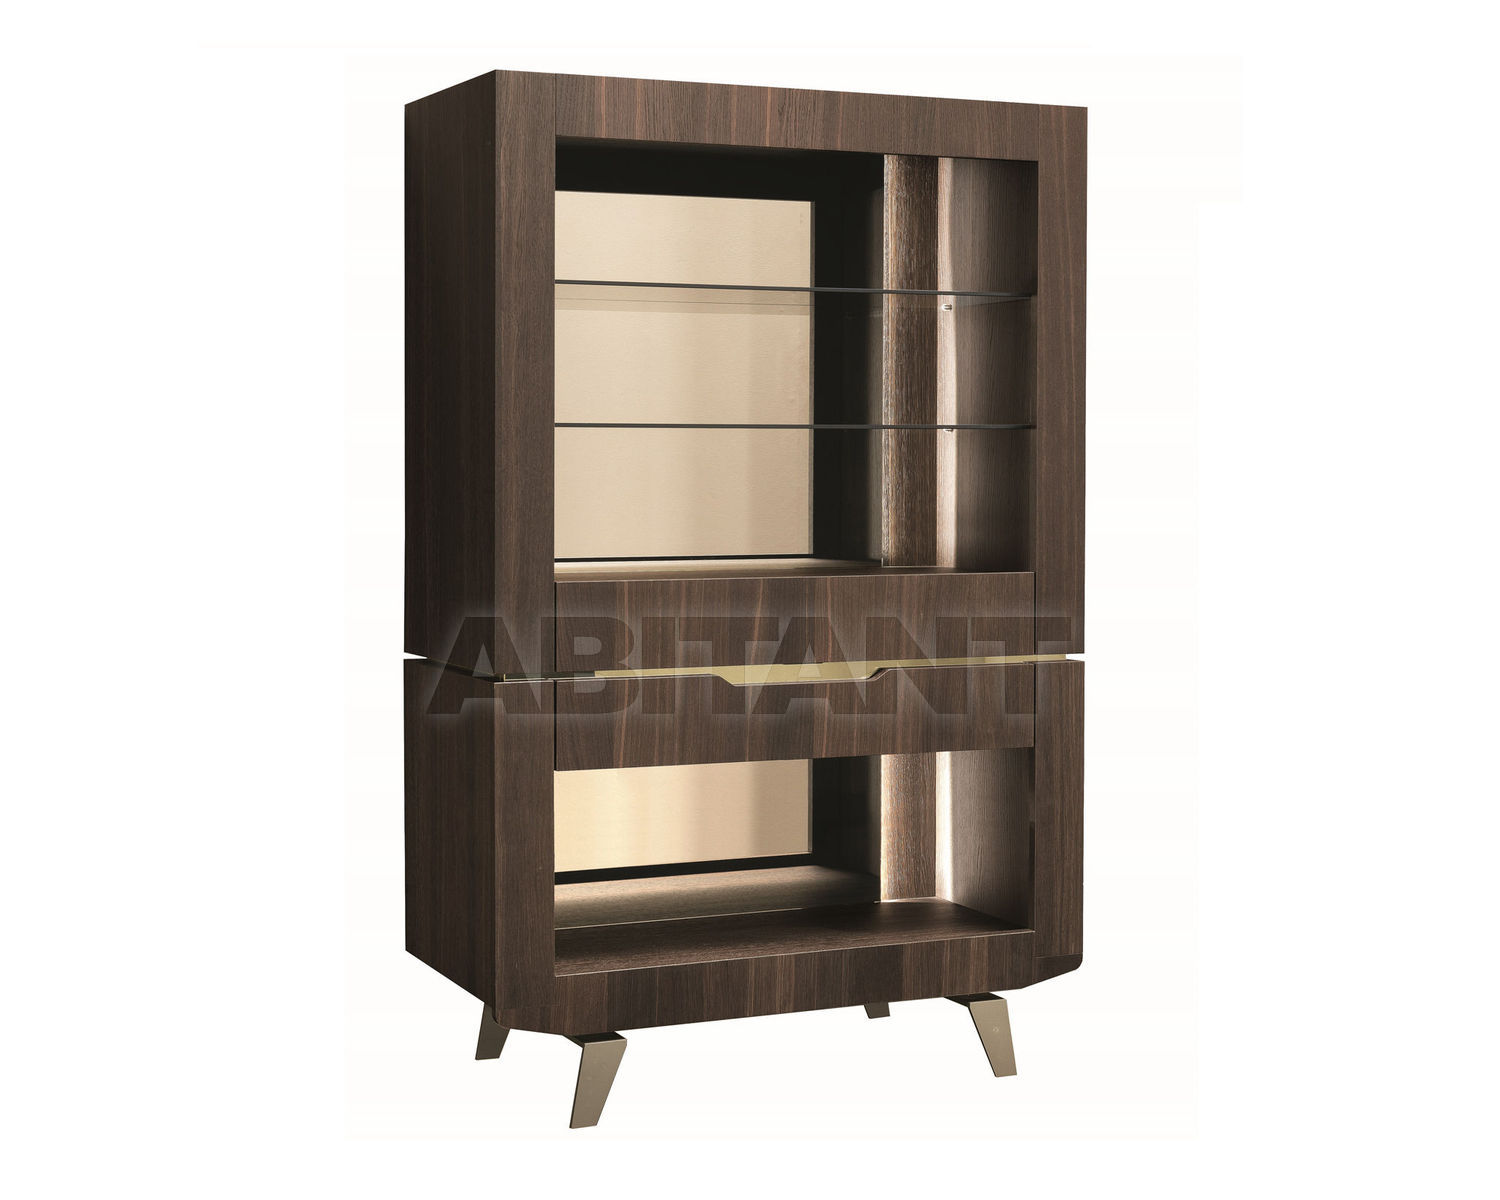 Sideboard Brown Alf Uno S P A Pjac0600rt Buy Order Online On